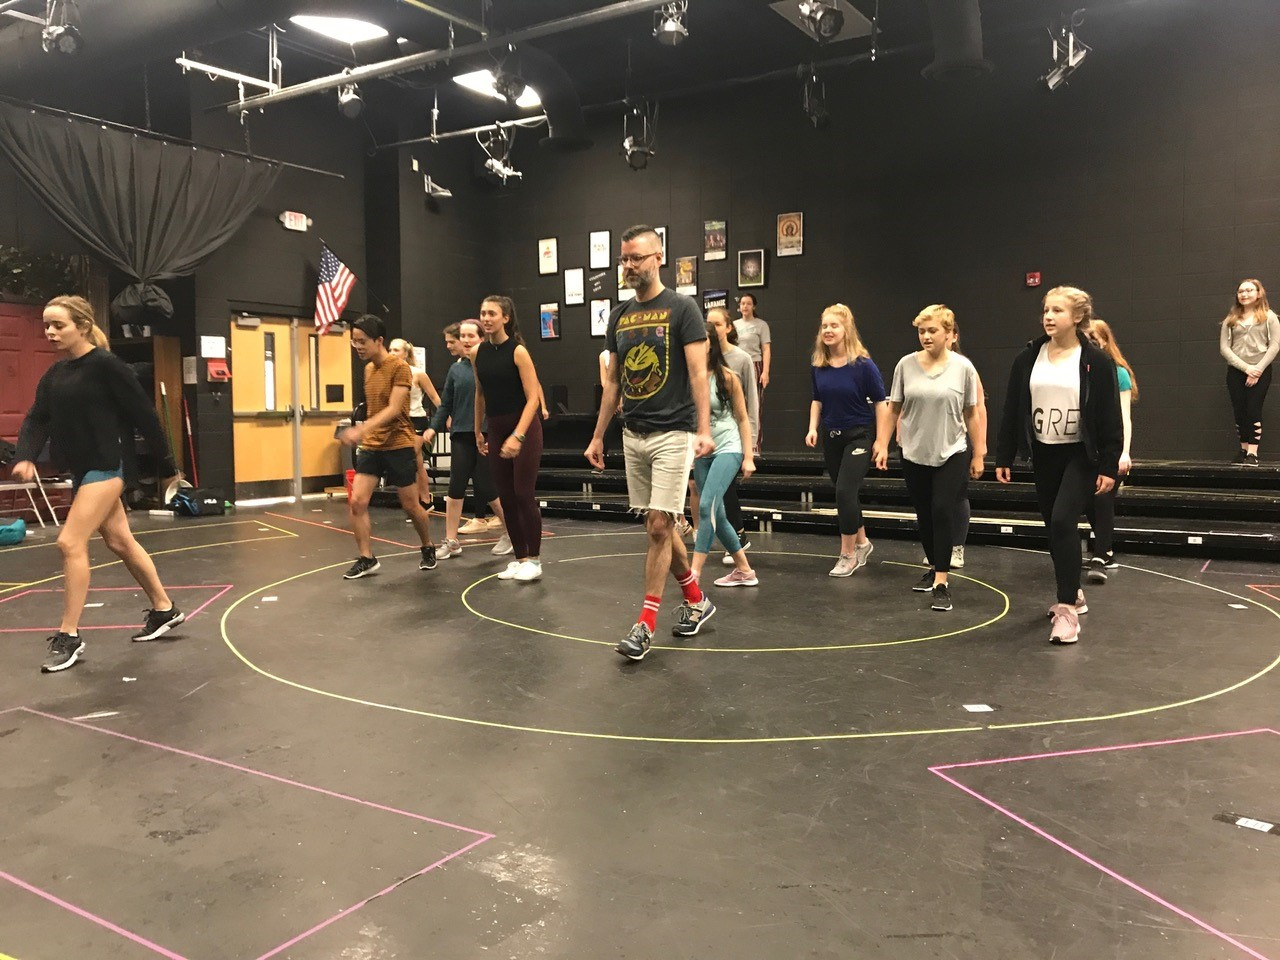 A Glimpse of the Magic Behind SSTI's Tuck Everlasting